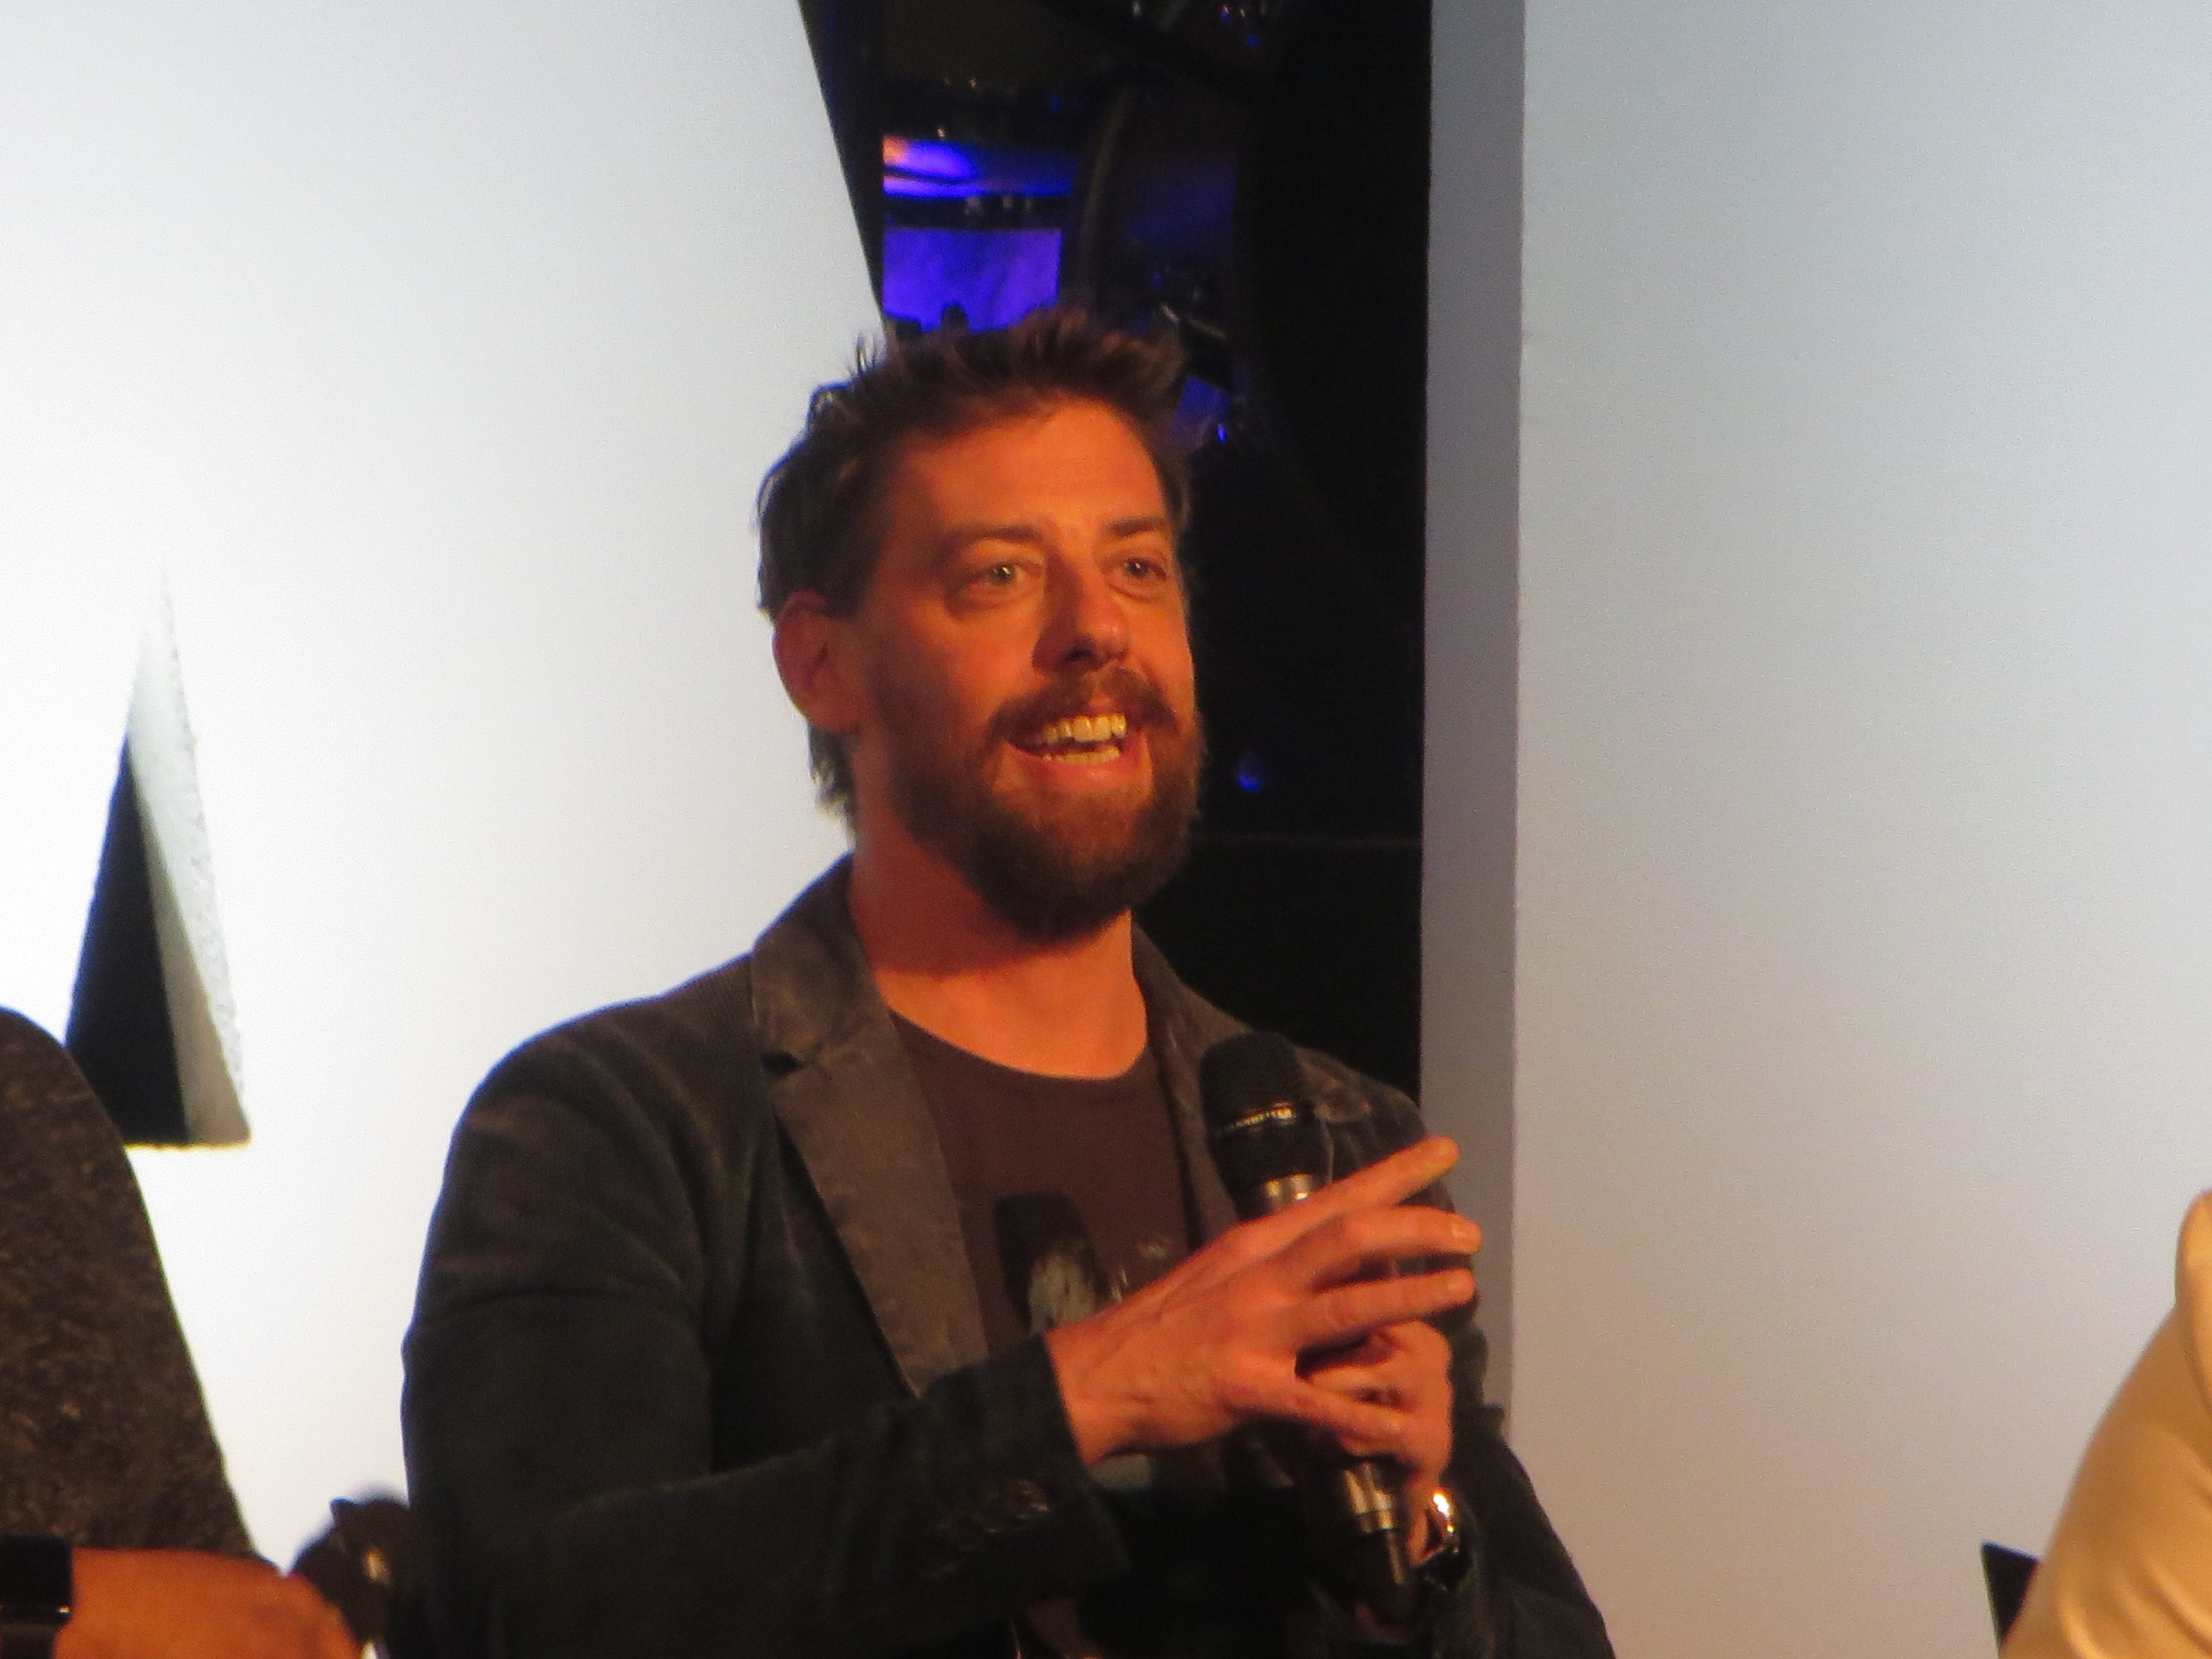 Christian Borle speaks during a Disney on Broadway at 25 panel at BroadwayCon 2019, held Jan. 11 to 13, 2019, at the New York Hilton Midtown in Manhattan.